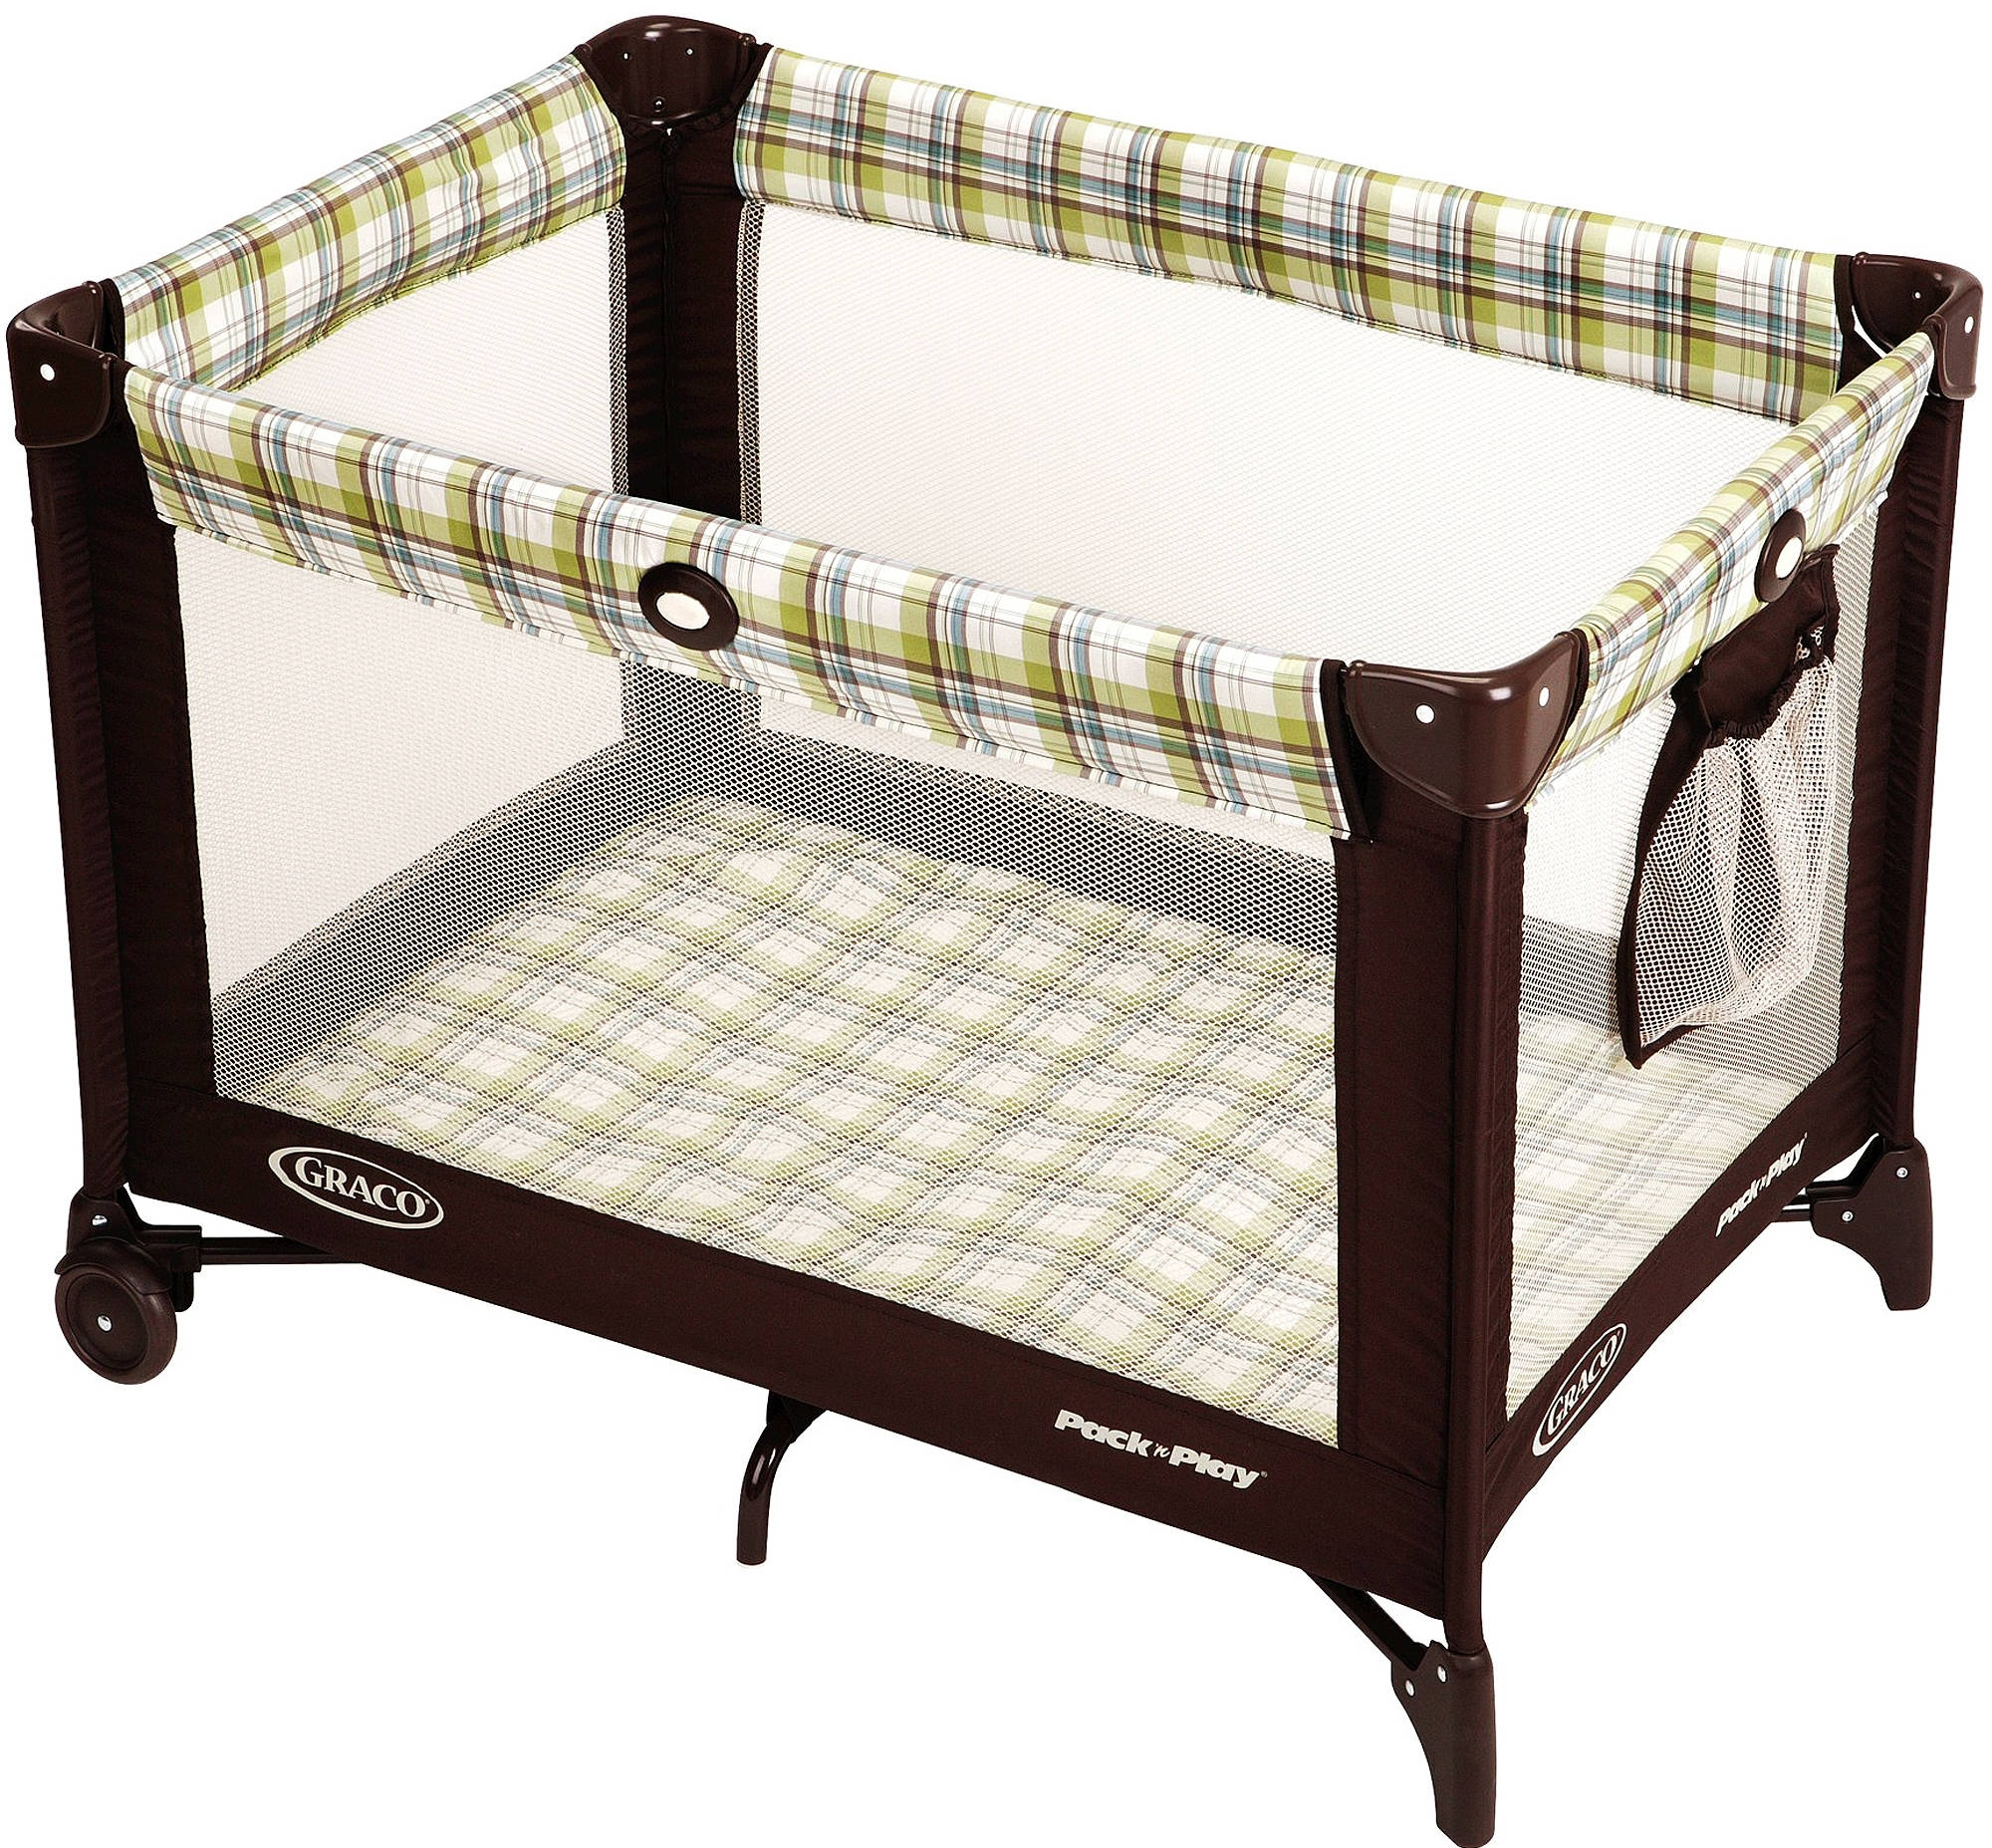 Graco Pack N Play for rent in Carolina Beach, Kure Beach and Fort Fisher